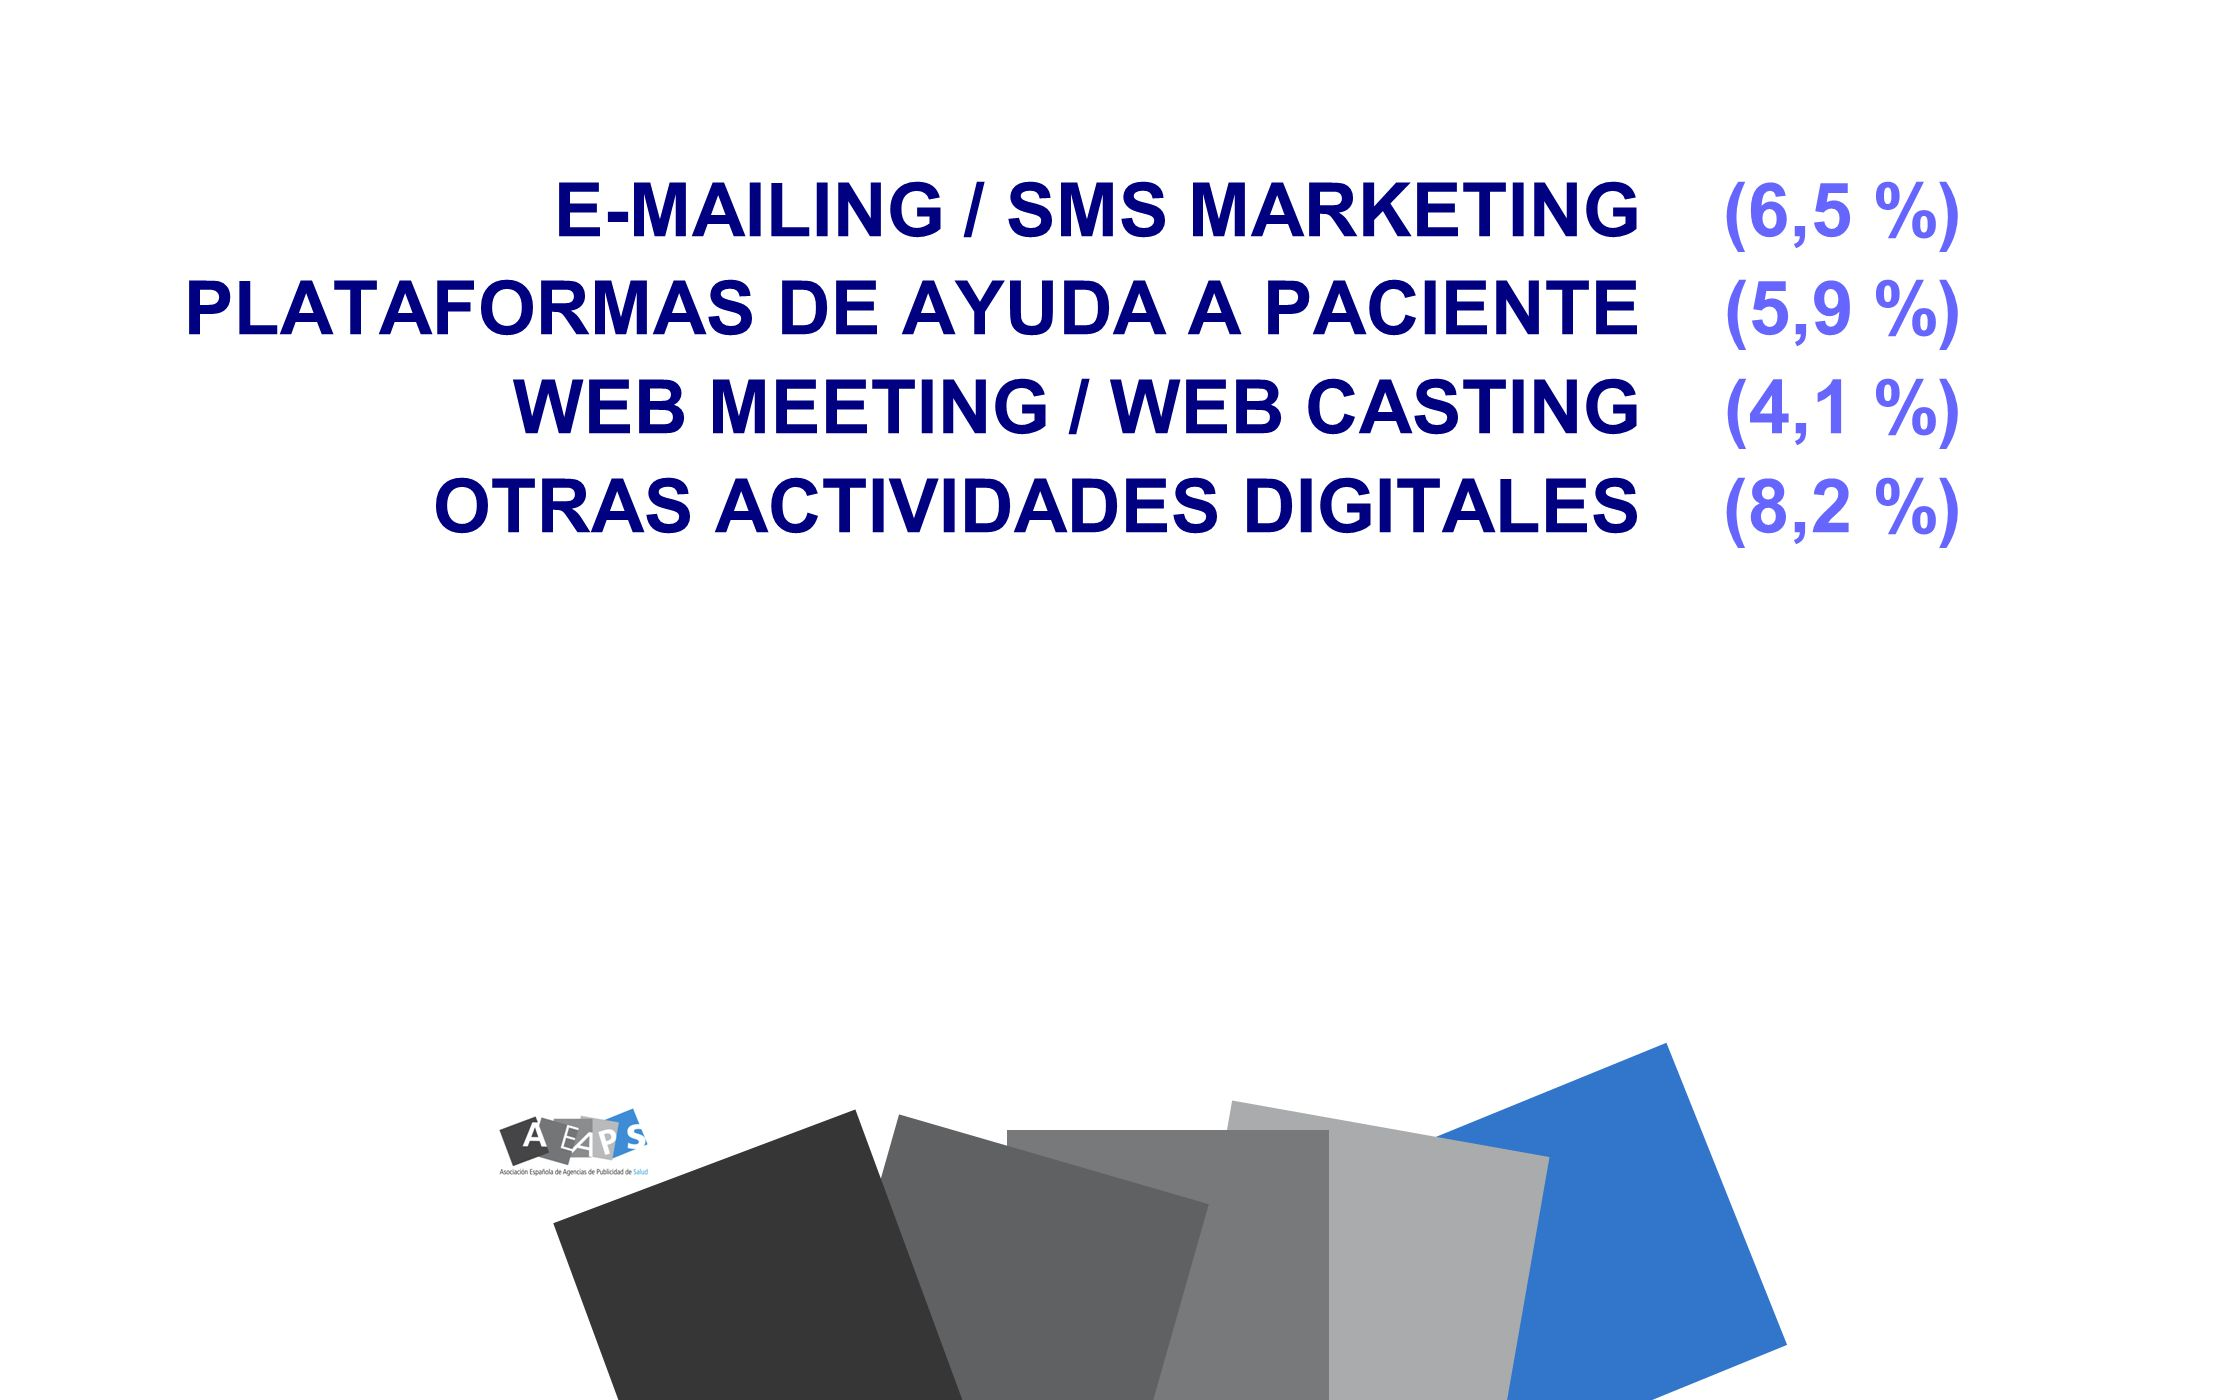 ING / SMS MARKETING (6,5 %)